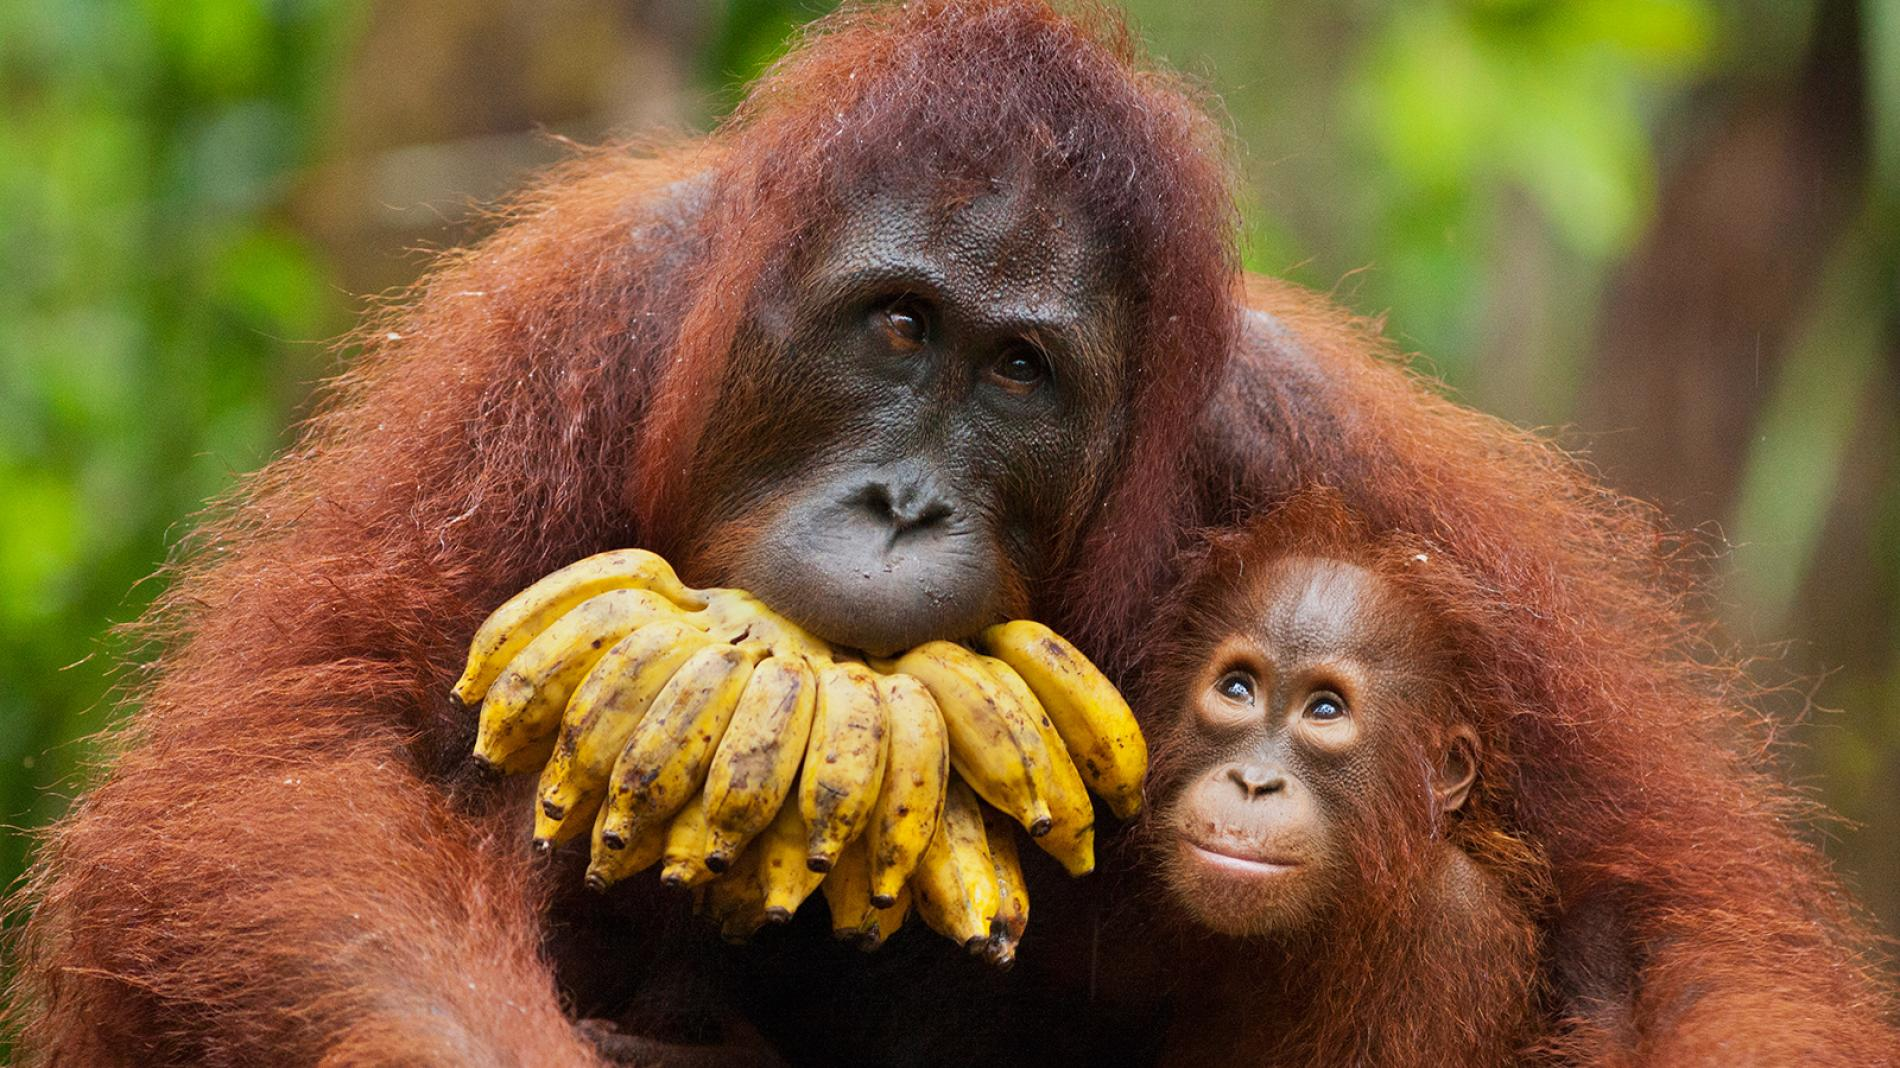 ww-primates-orangutans.ngsversion.1465852517221.adapt.1900.1.jpg